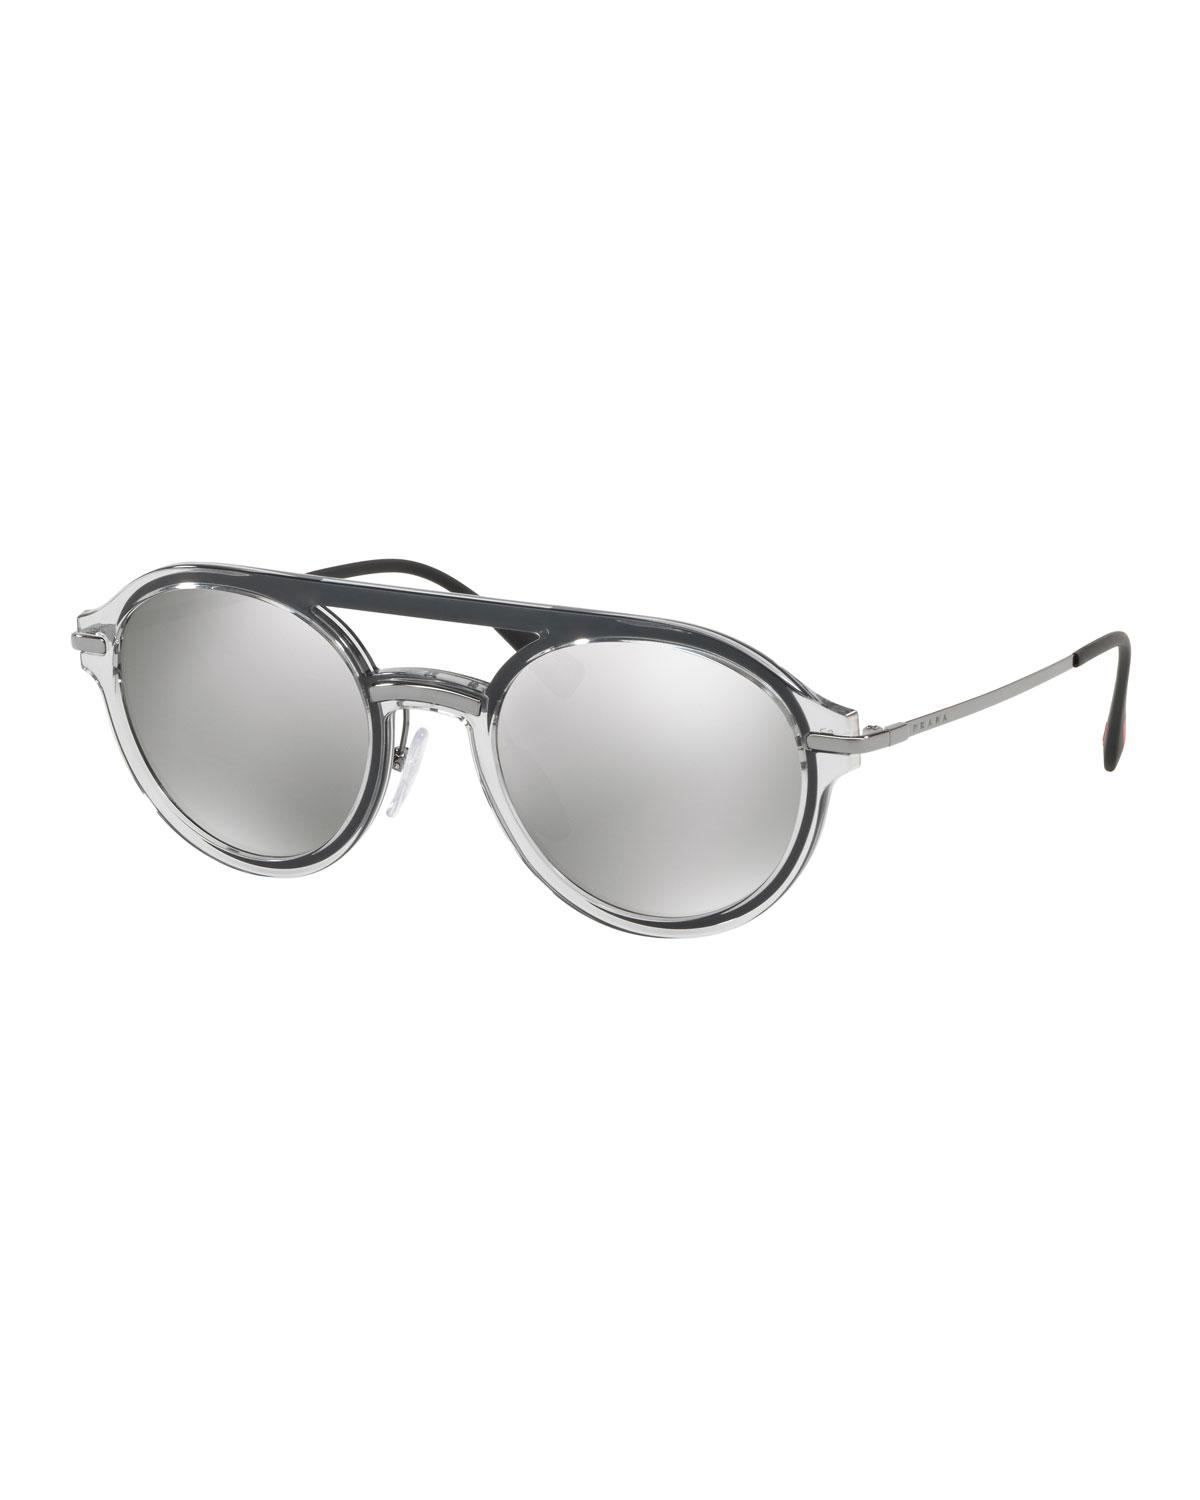 25b4bffe23d Lyst - Prada Men s Round Plastic Mirrored Sunglasses in Gray